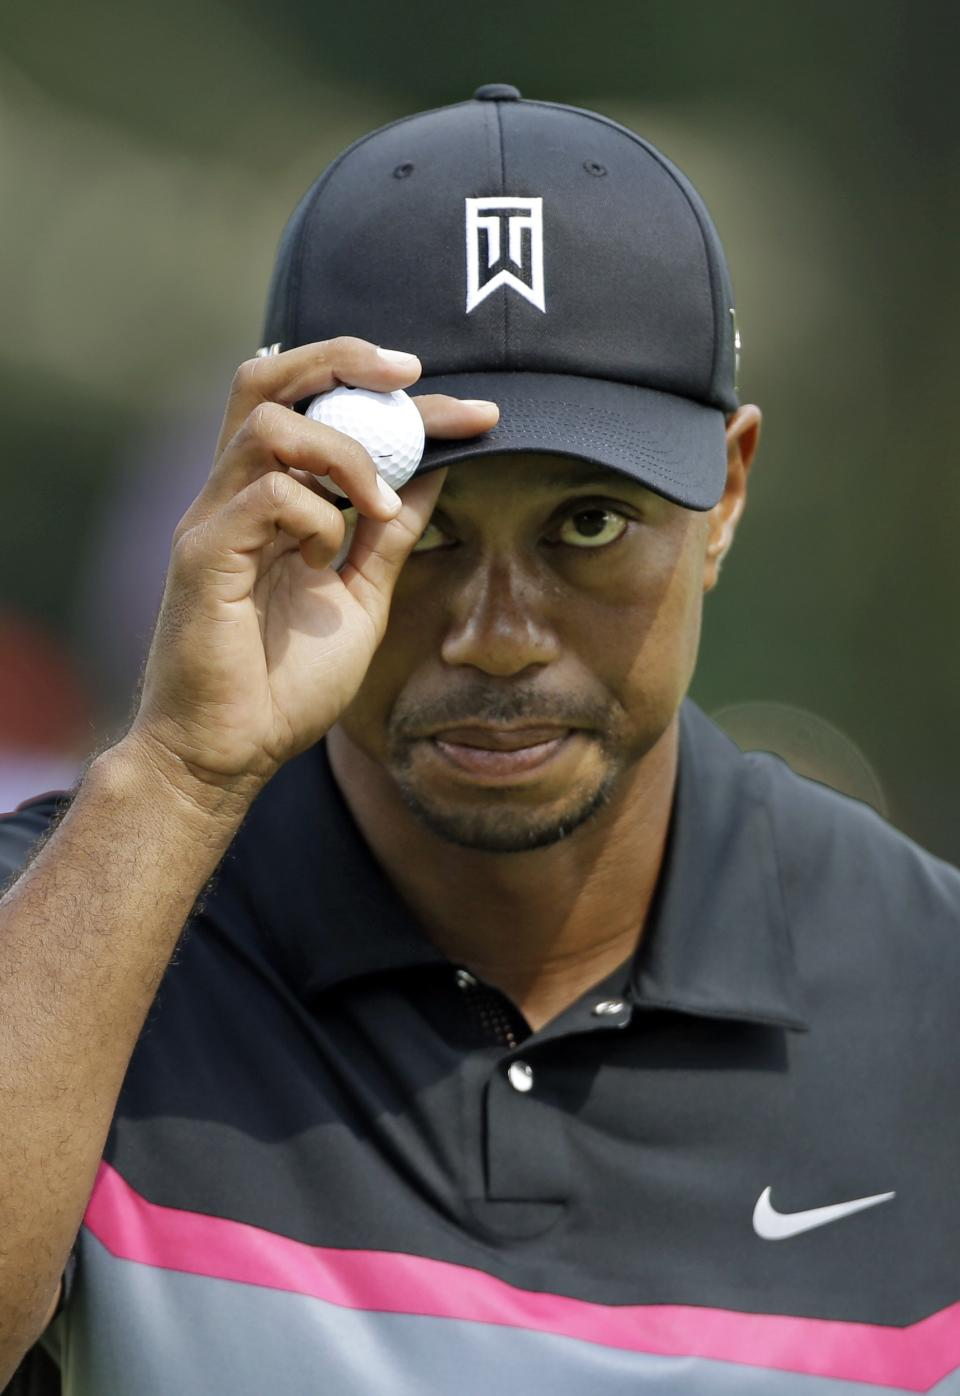 Tiger Woods acknowledges fans after saving par on the 17th hole during the first round of the Bridgestone Invitational golf tournament Thursday, Aug. 1, 2013 at Firestone Country Club in Akron, Ohio. (AP Photo/Mark Duncan)